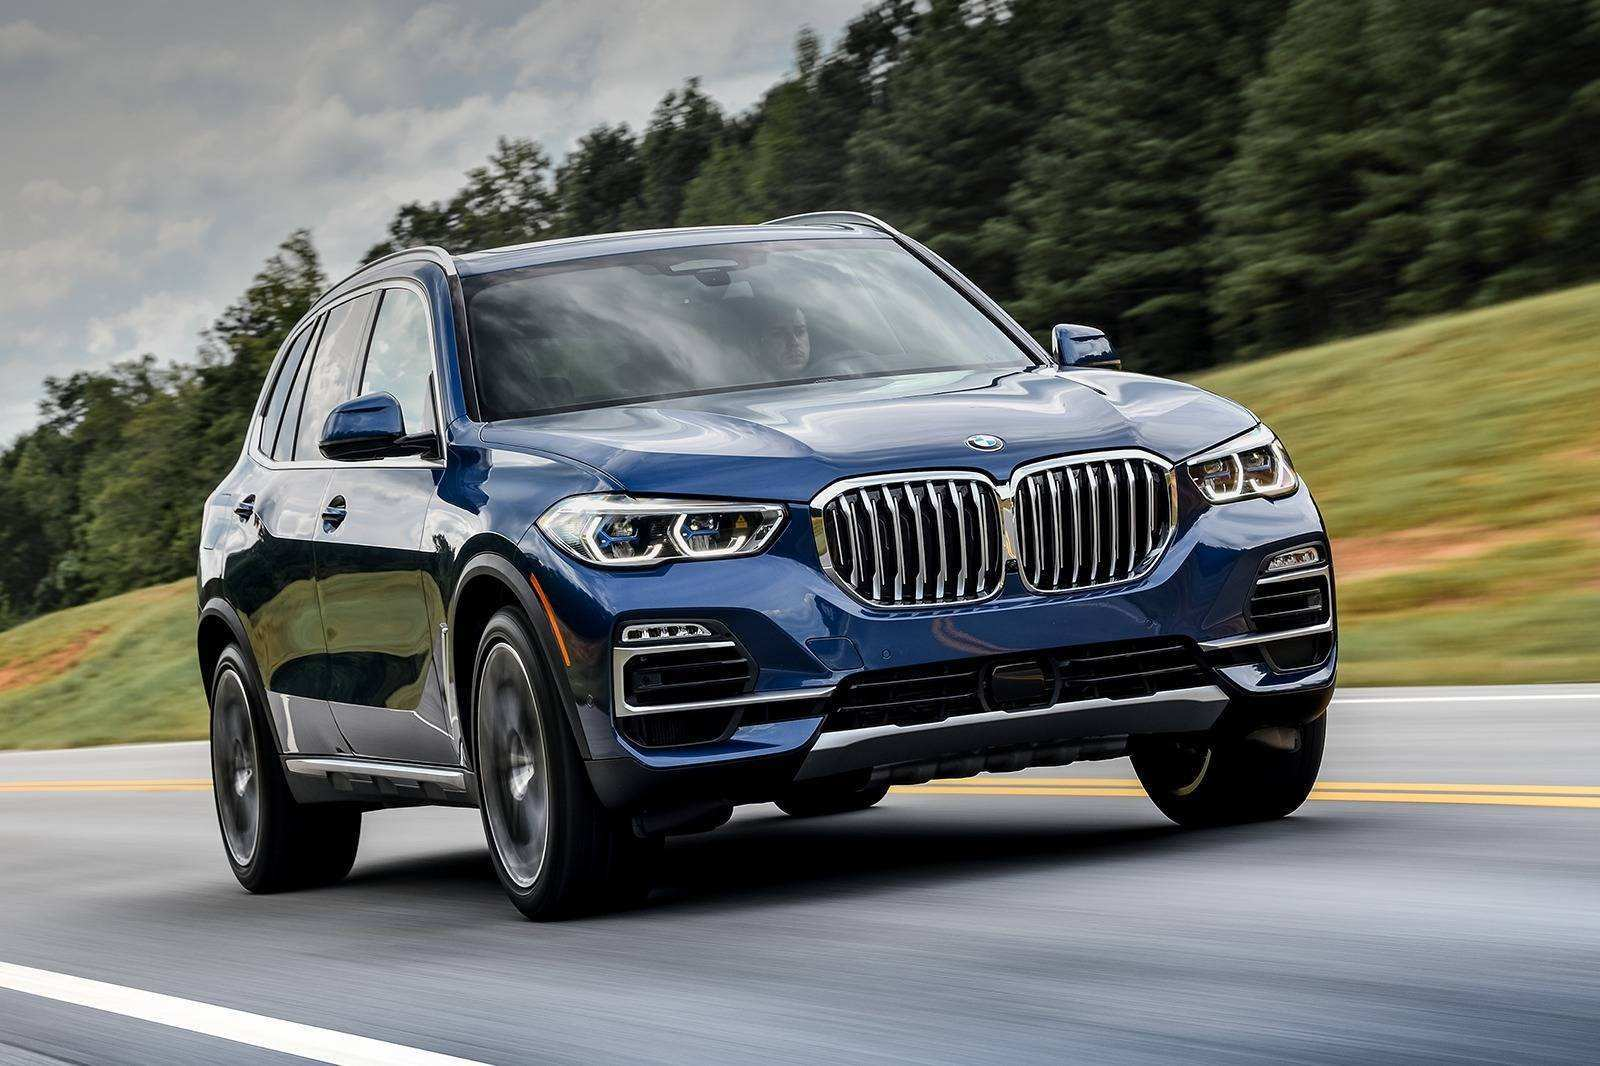 65 Best Review Bmw X 2019 Engine for Bmw X 2019